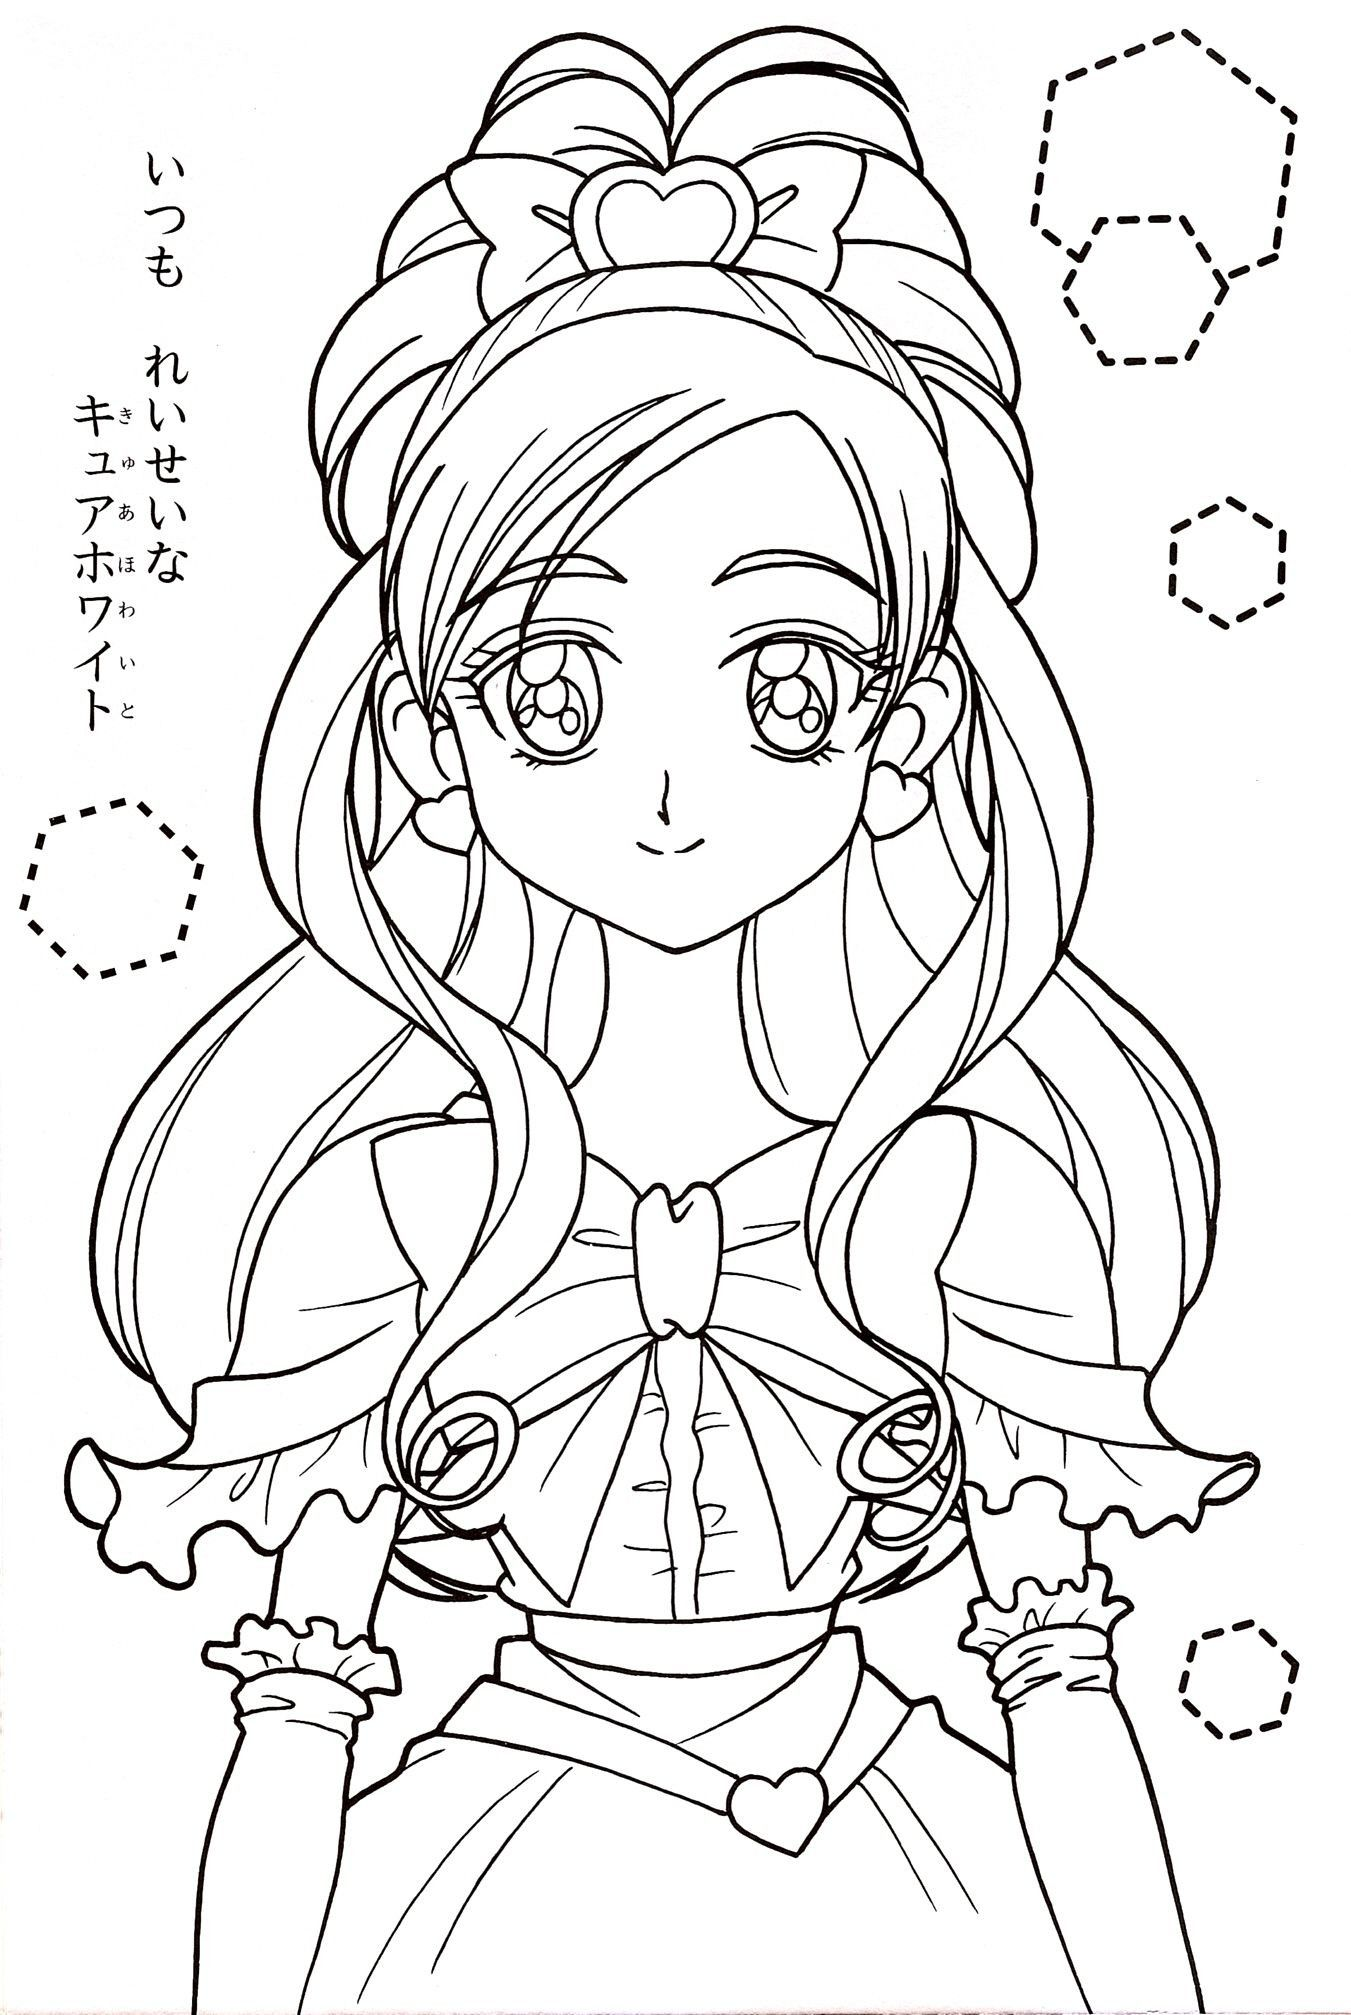 27 Pretty Image Of Glitter Force Coloring Pages Entitlementtrap Com Moon Coloring Pages Coloring Pages For Girls Coloring Pages